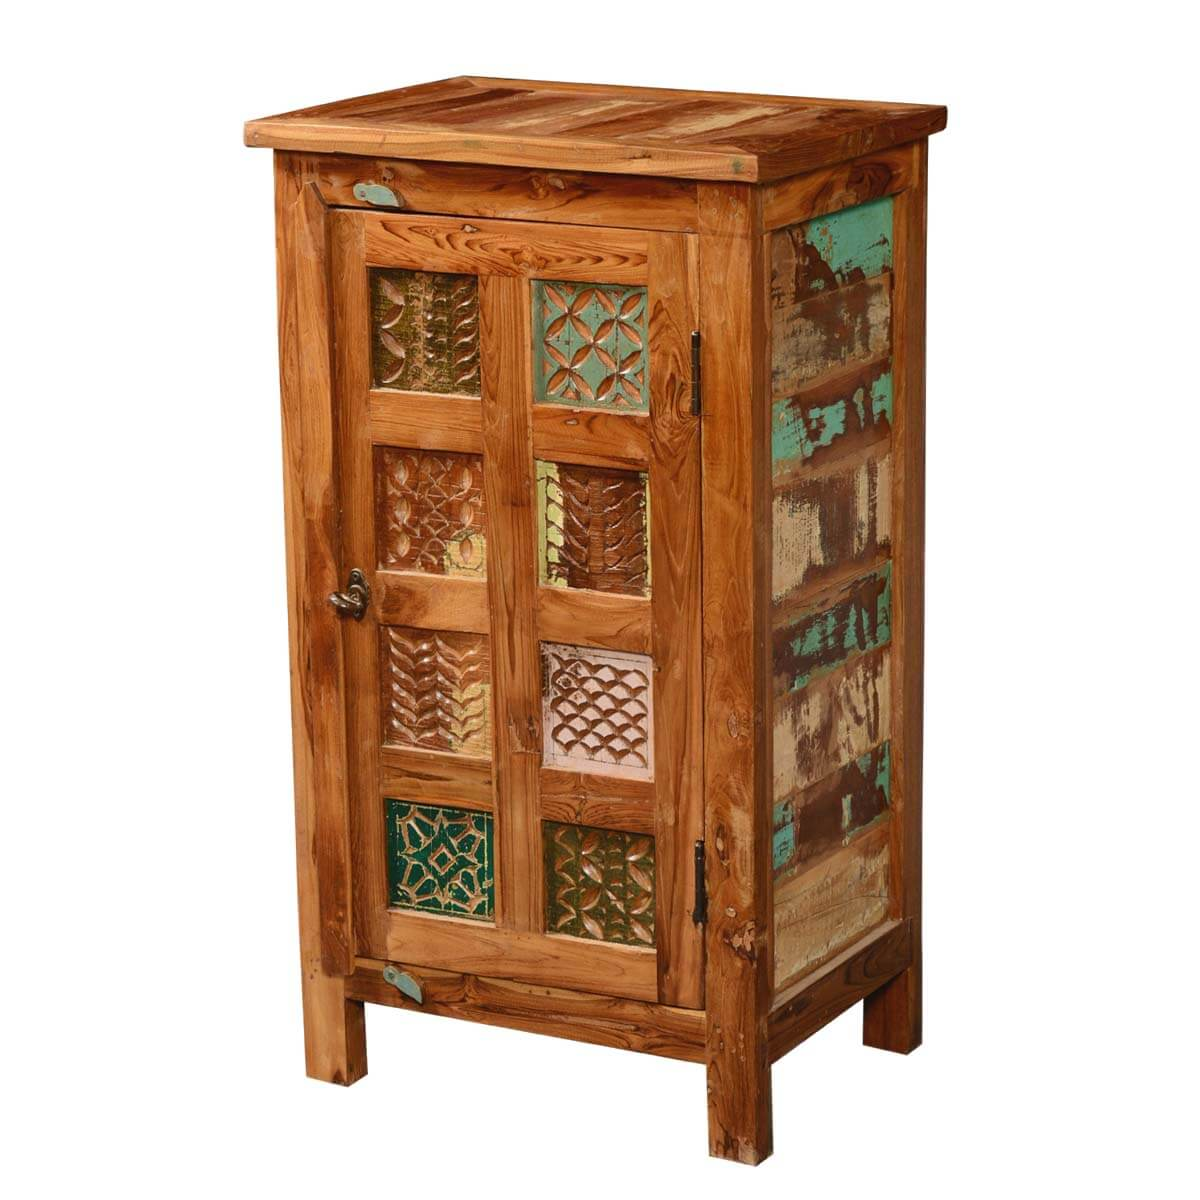 Appalachian Patch Quilt Reclaimed Wood Kitchen Cupboard Cabinet